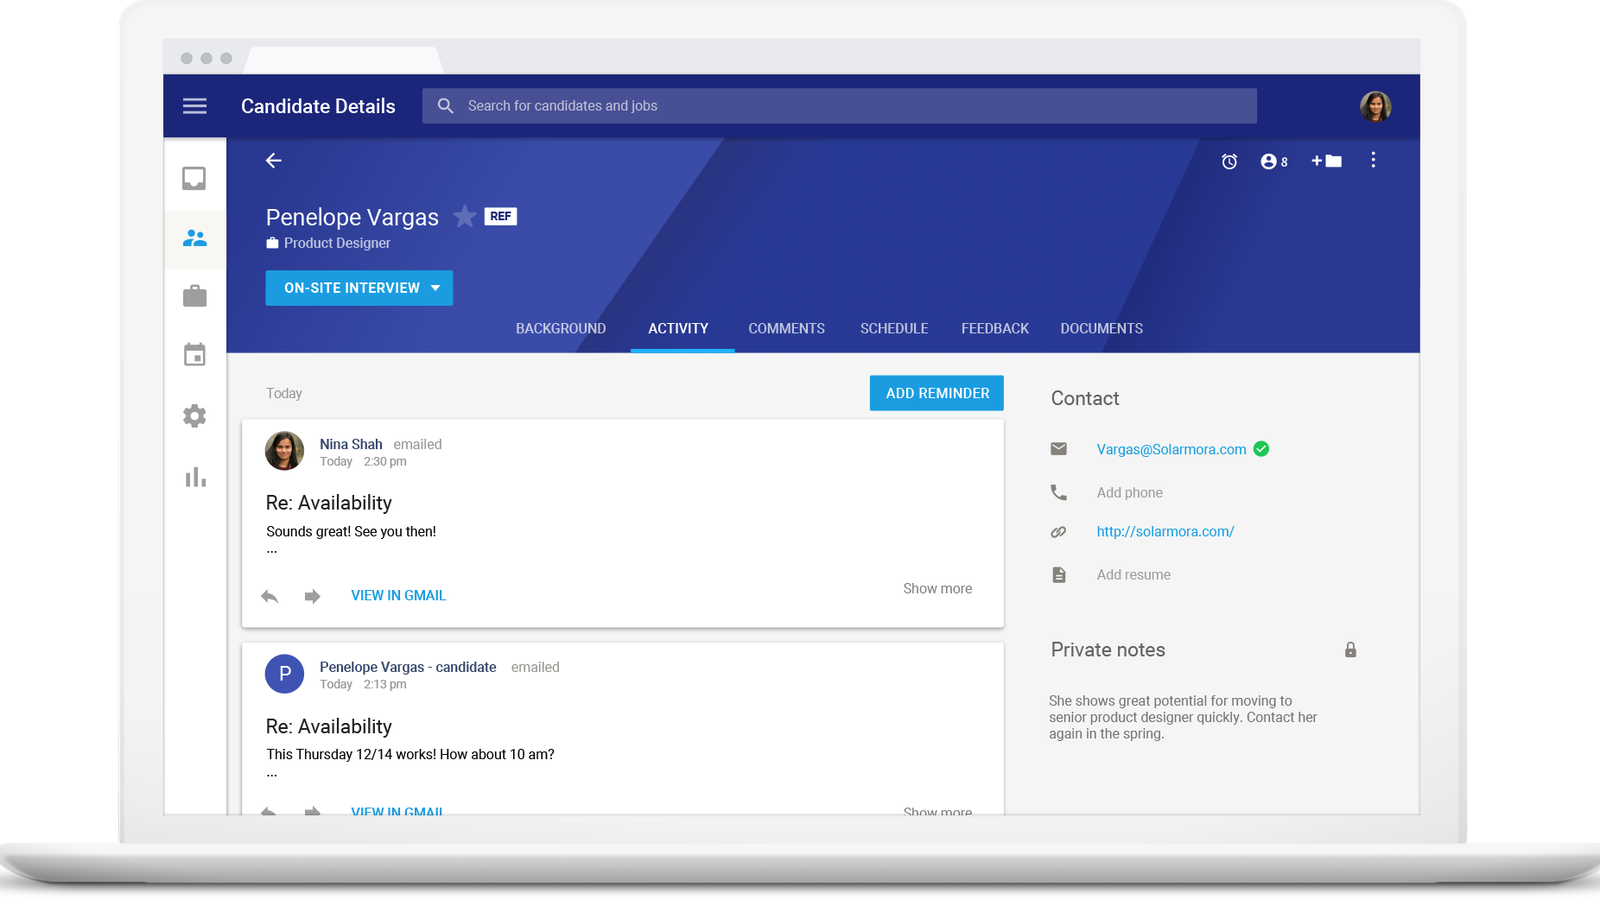 Google Publicly Launches Hire, a Job Applicant Management Tool